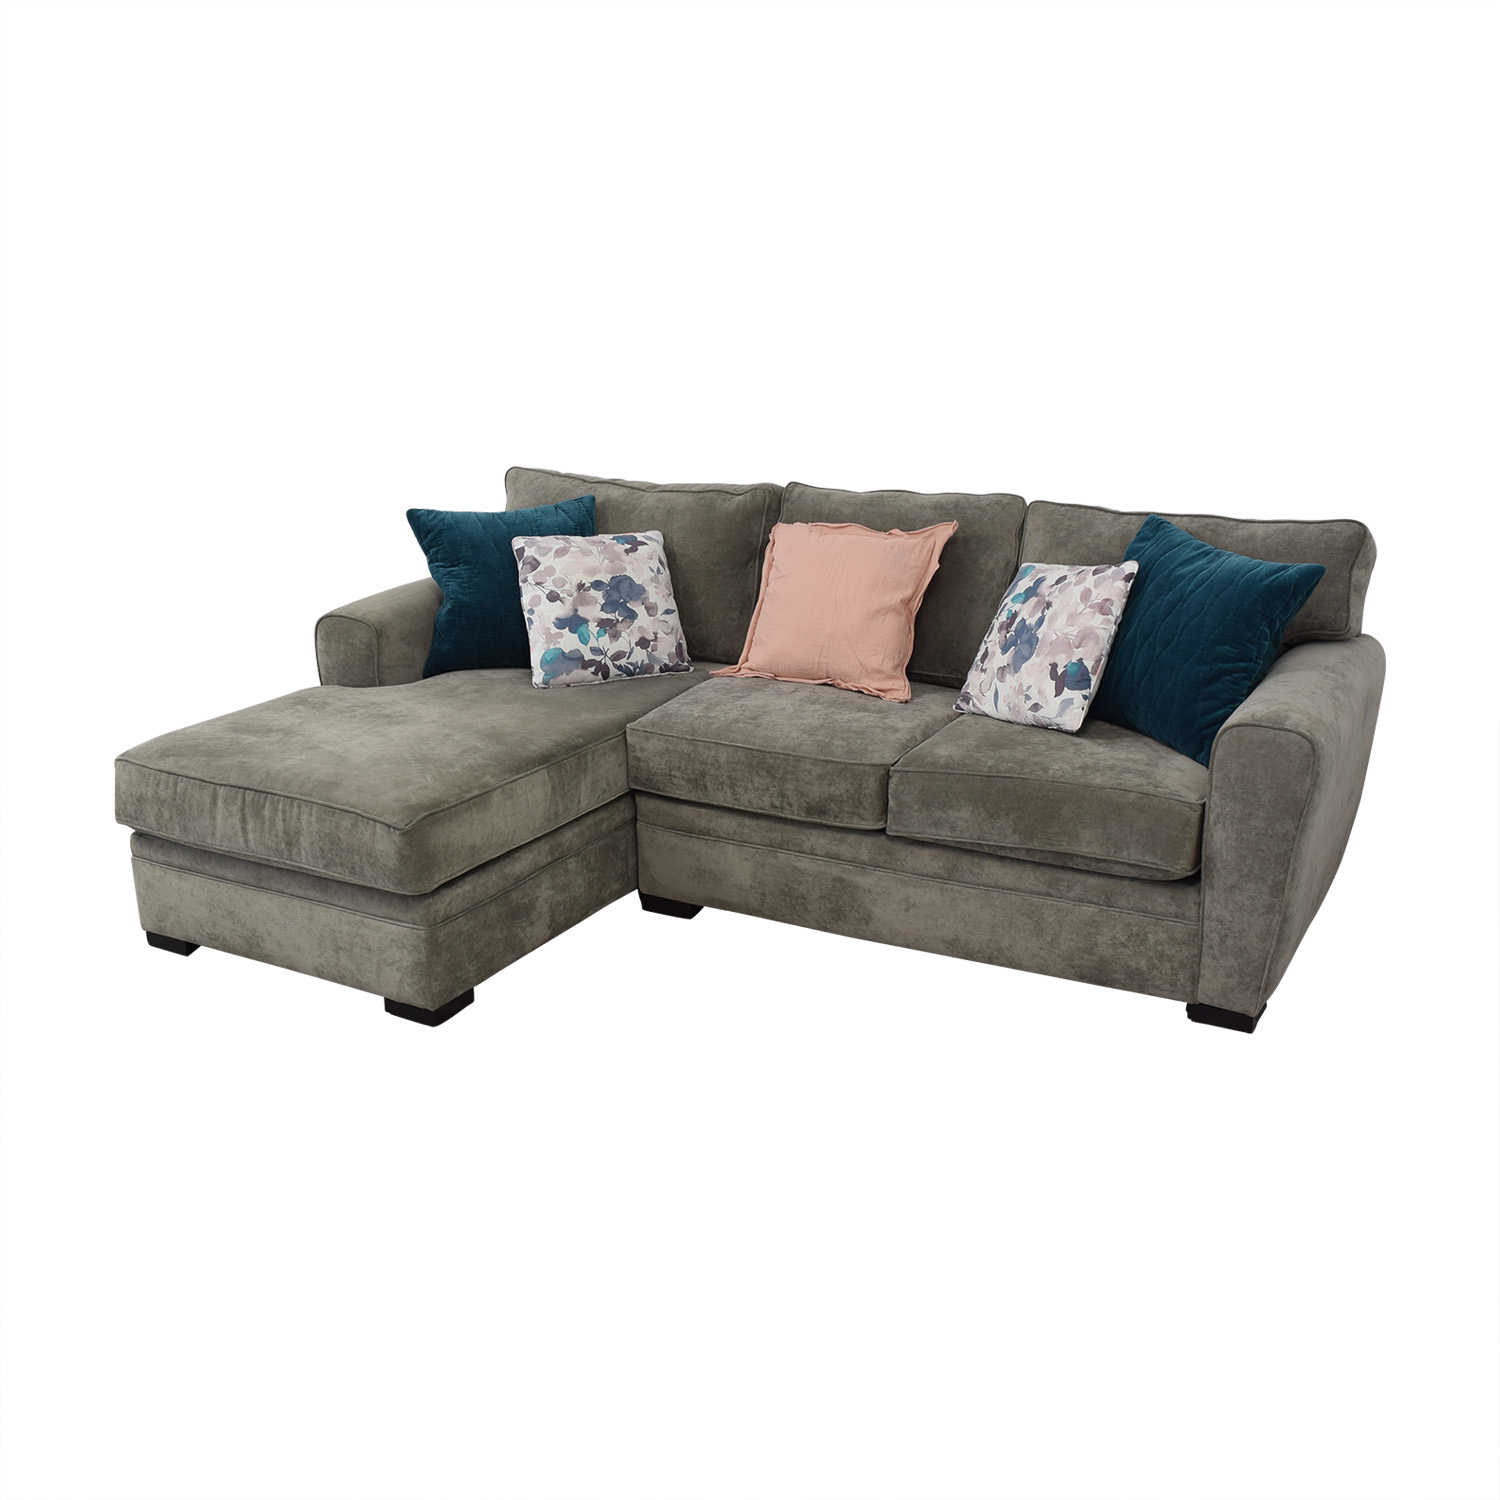 Raymour & Flanigan Raymour & Flanigan Two Piece Sectional coupon